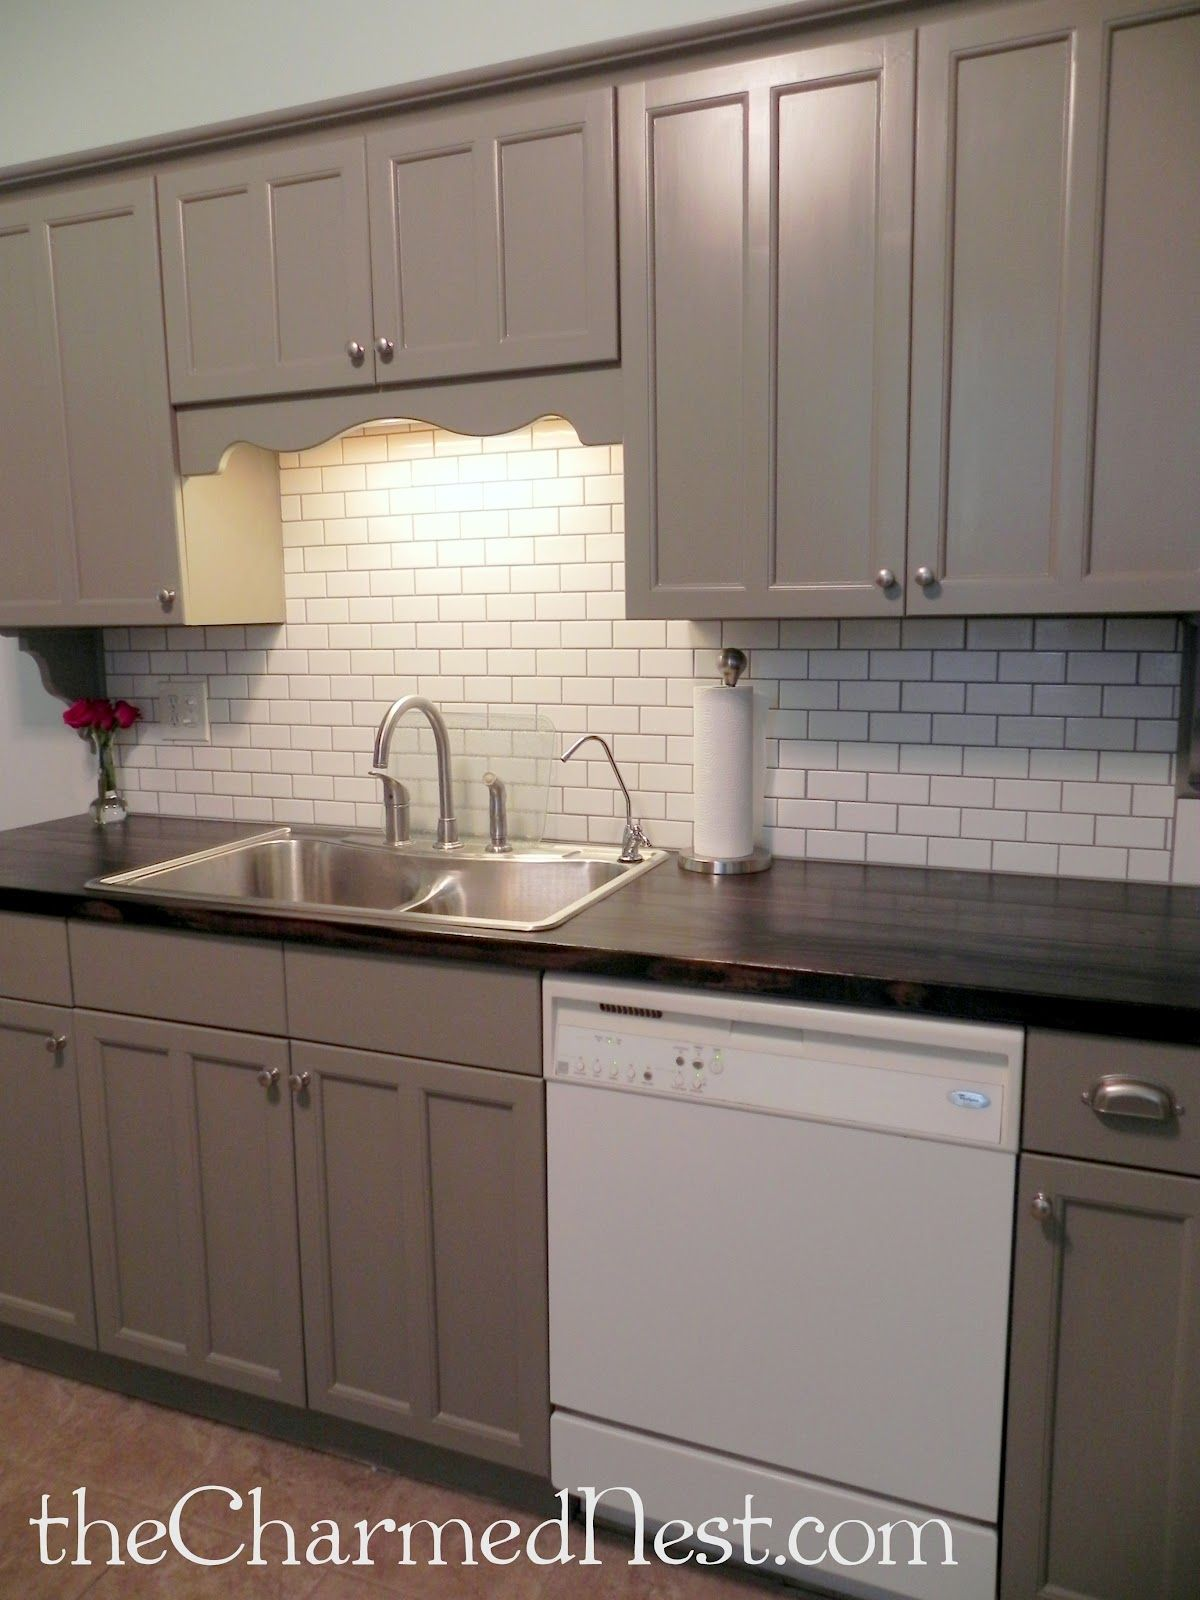 Spray paint for kitchen cupboards  Annie Sloan Chalk Paint in French Linen with General Finishes water